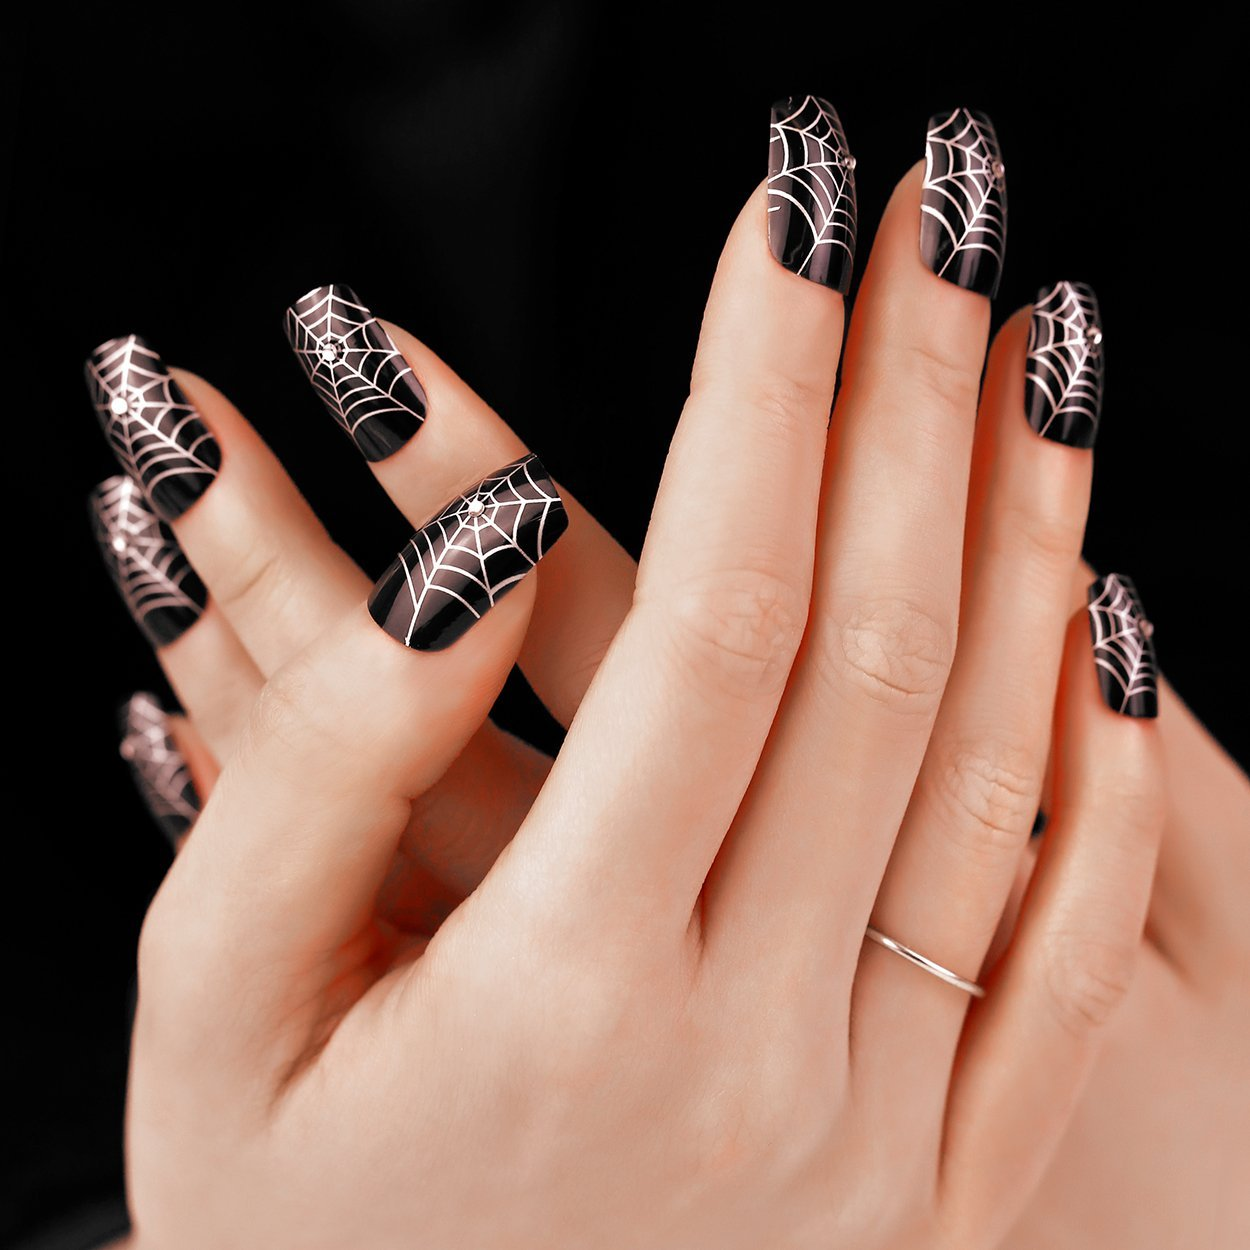 Cheap Gothic Nails, find Gothic Nails deals on line at Alibaba.com